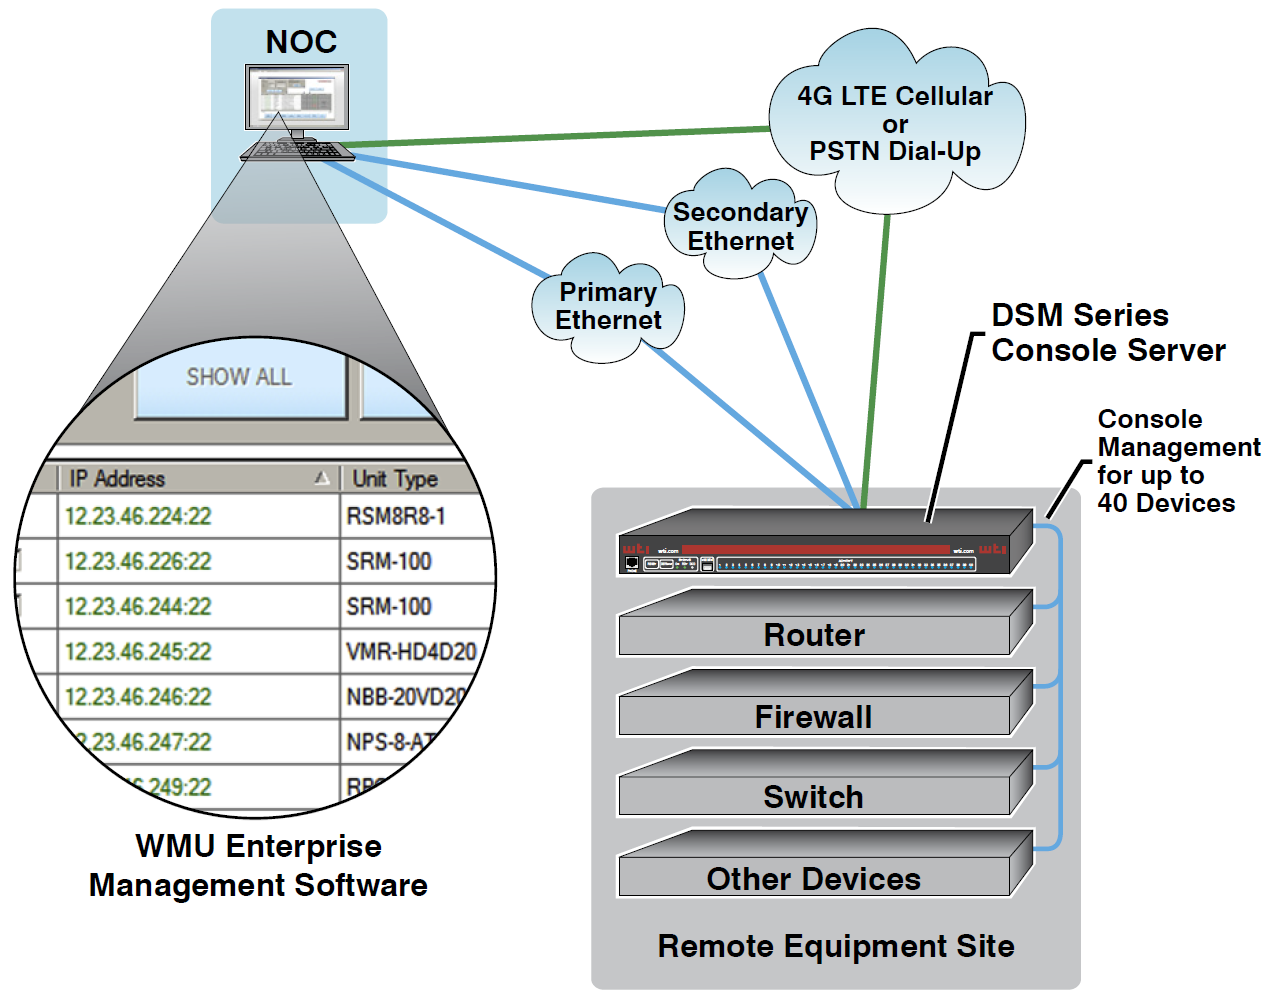 Diagram showing the DSM Serial Console Server using Out-of-Band Dial Up Access